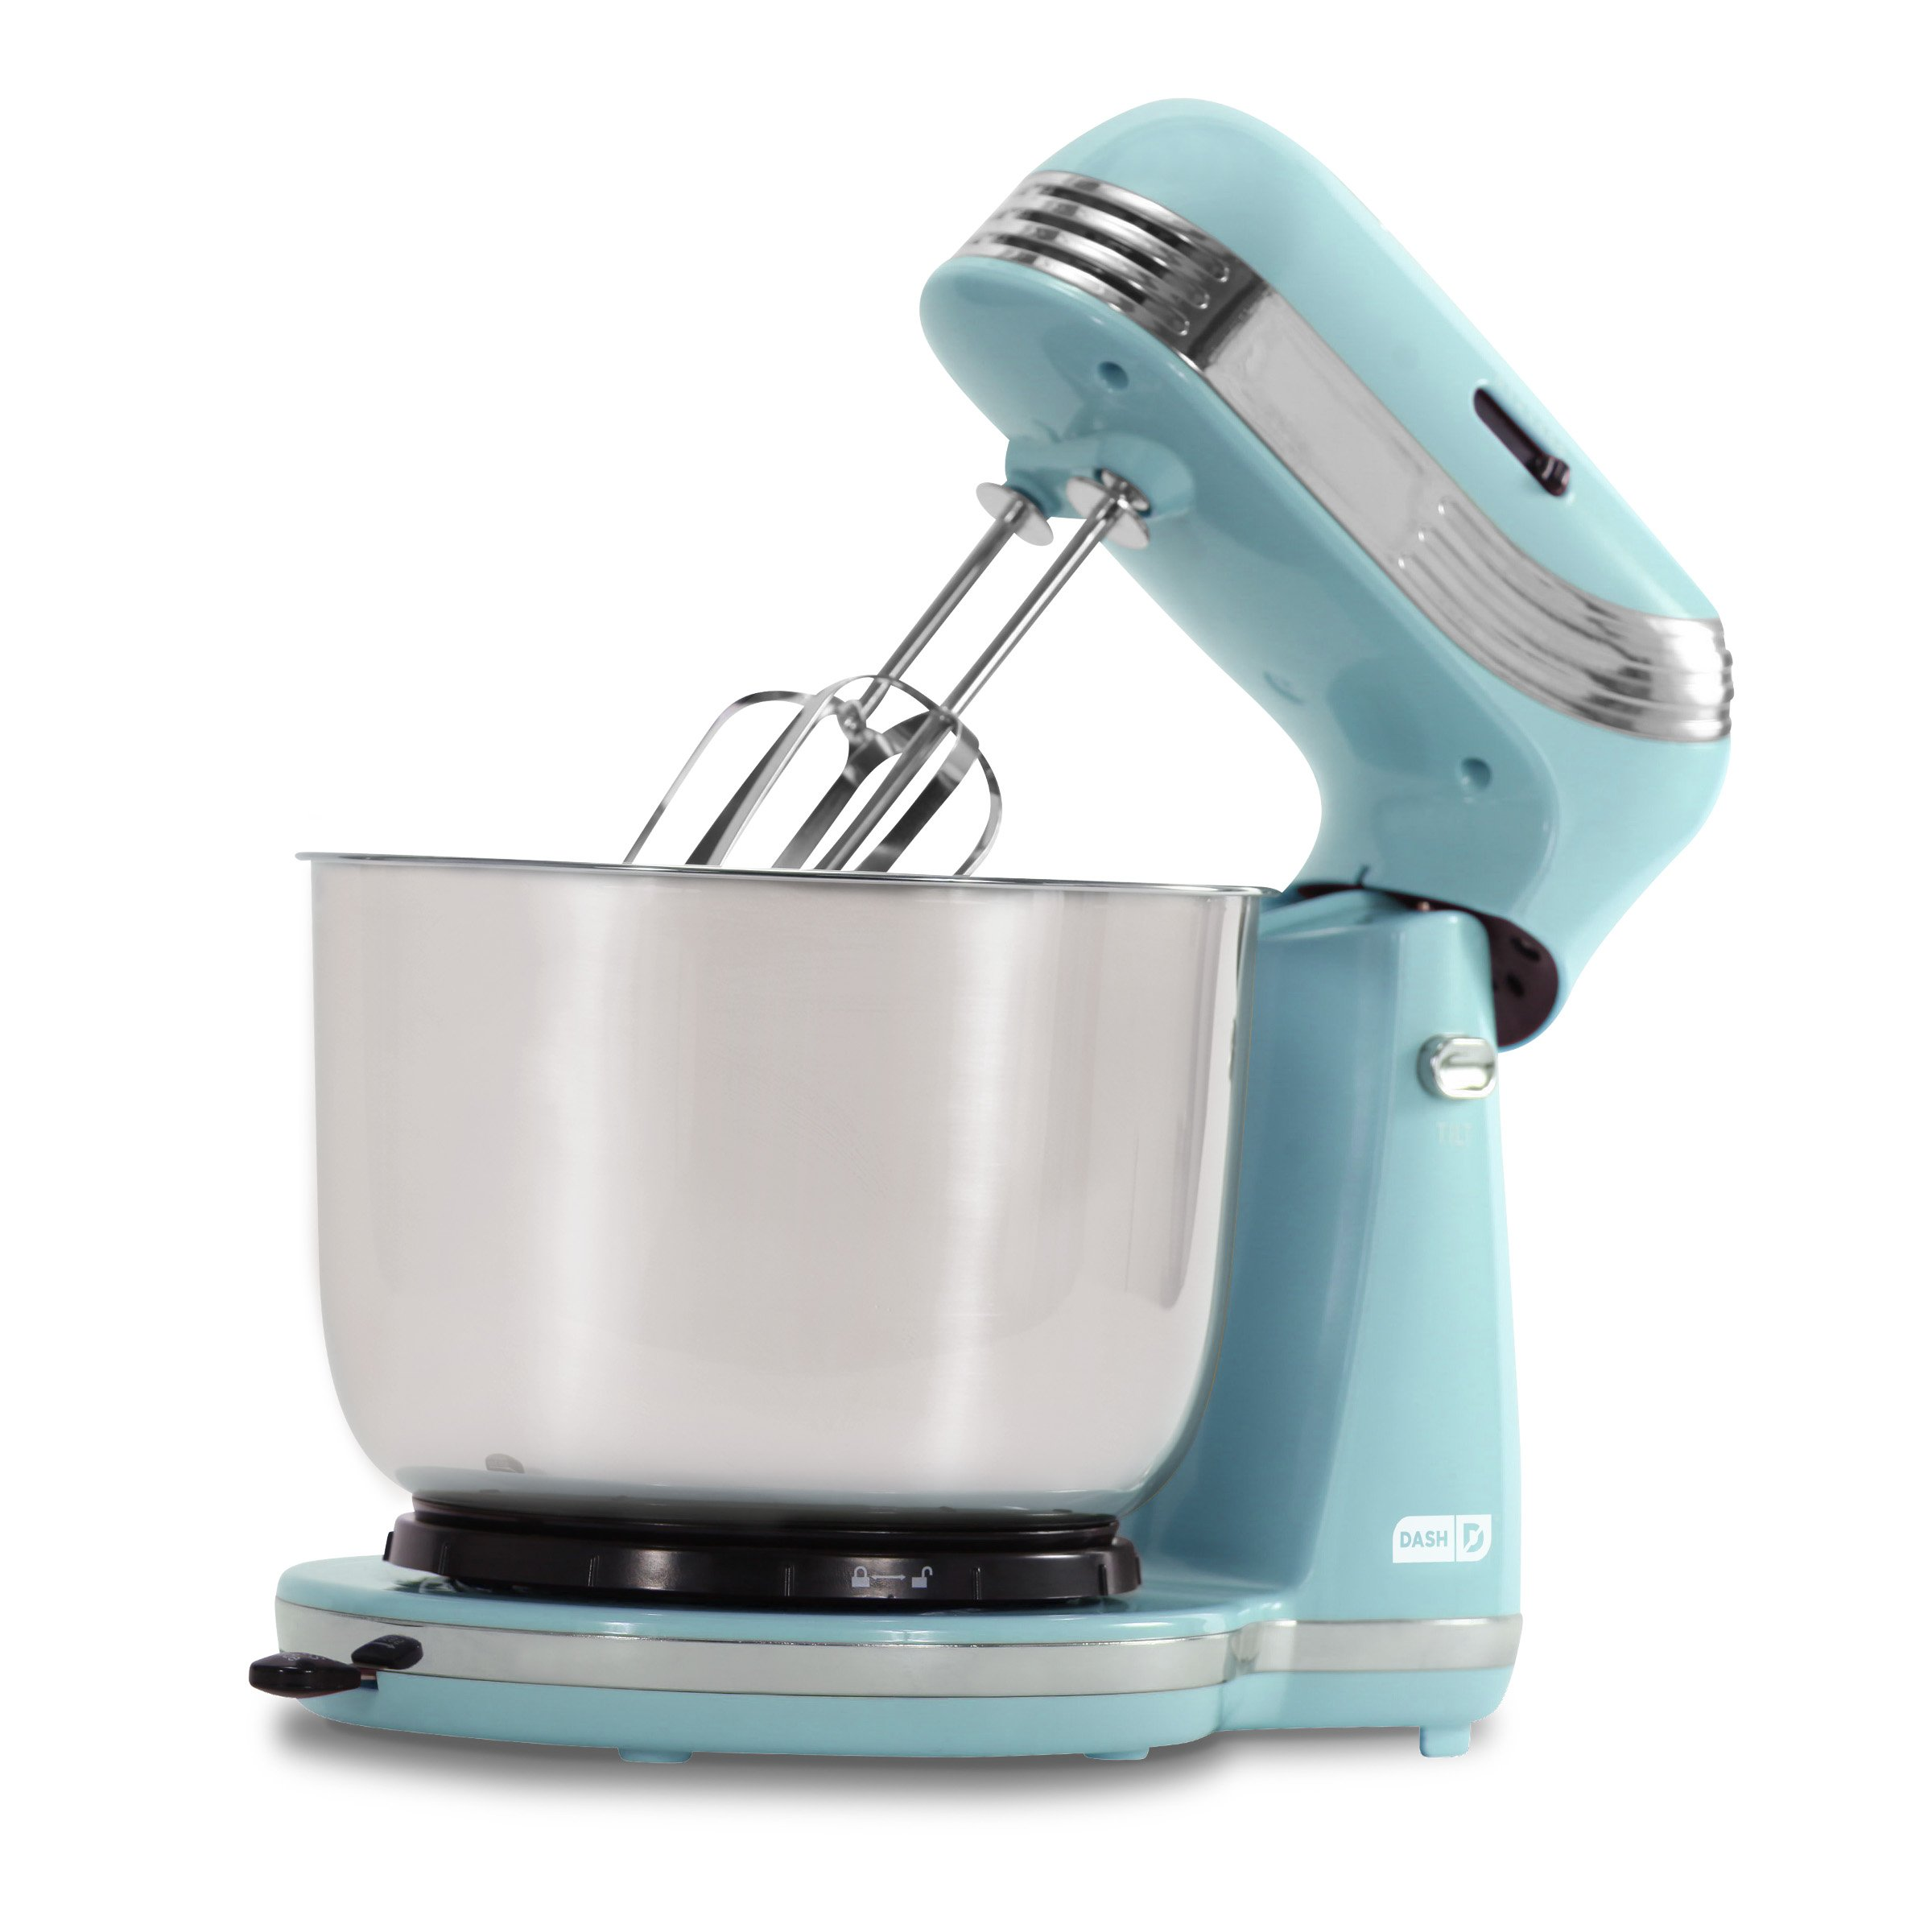 Cheap Electric Powder Dough Mixer, find Electric Powder Dough Mixer ...